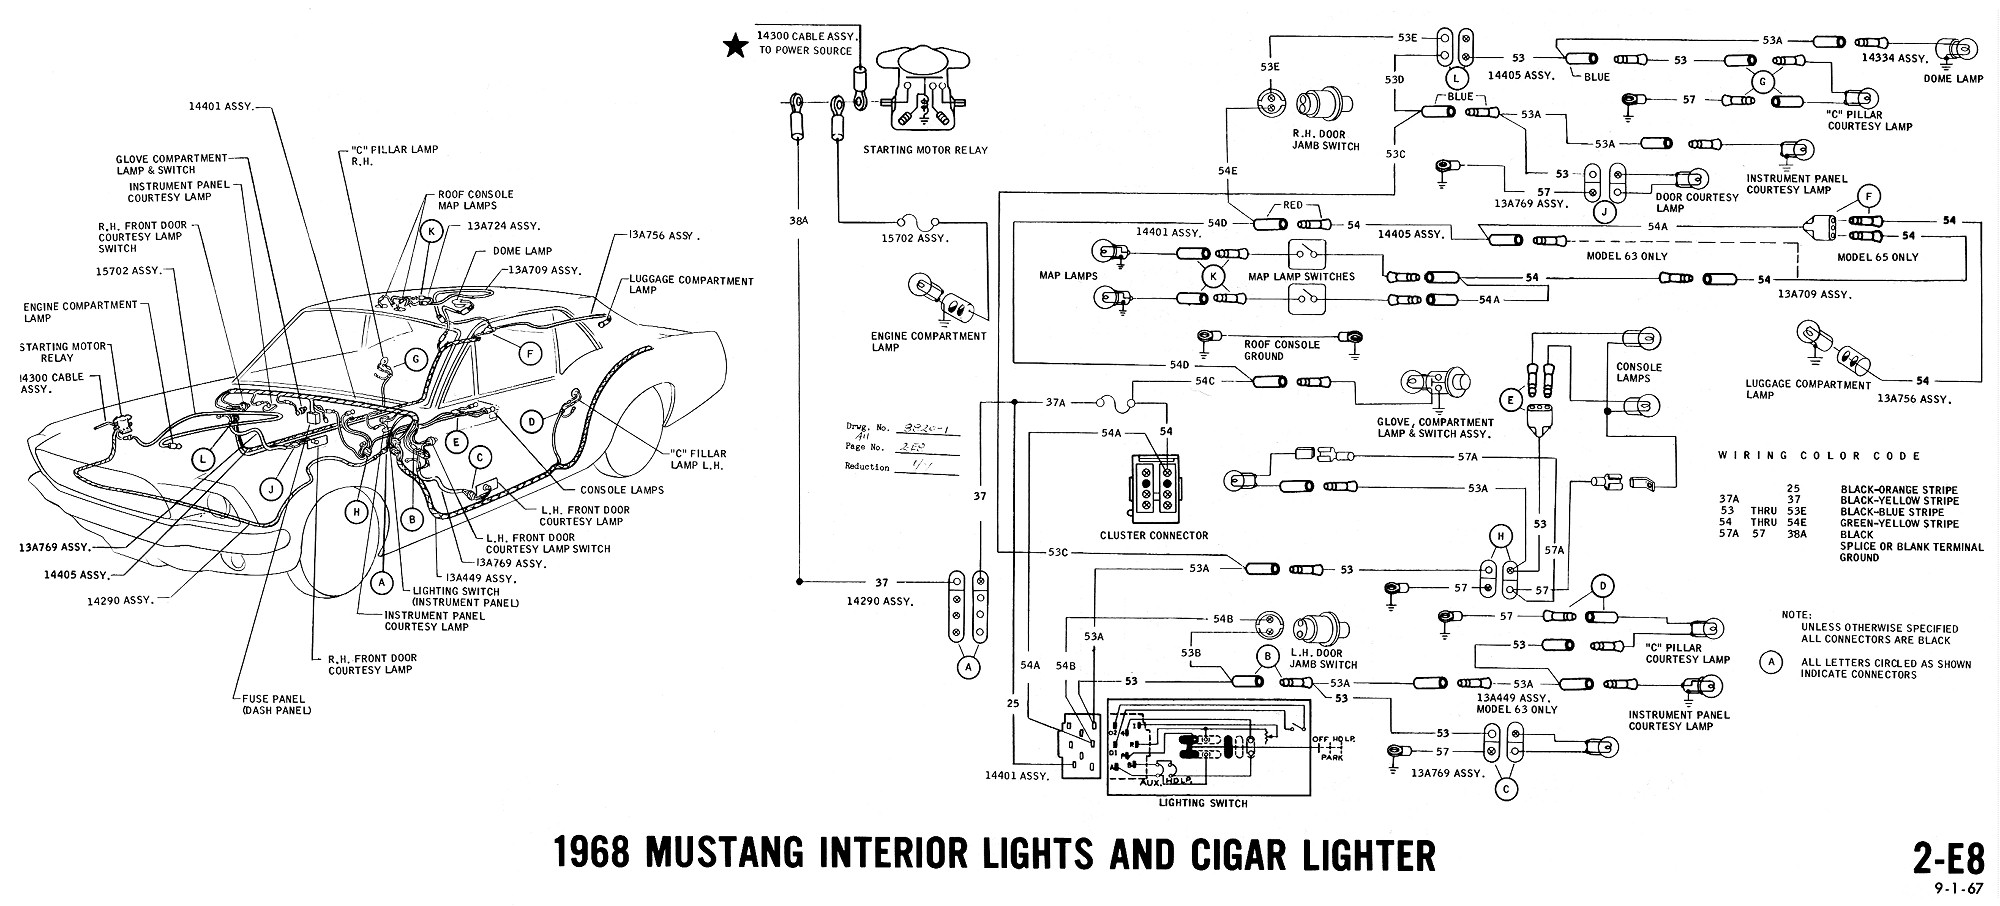 Mustang Fuse Box 1968 Electrical Wiring Diagrams 68 F100 Interior Cluster Wire Diagram Full Hd Maps 1970 Cougar